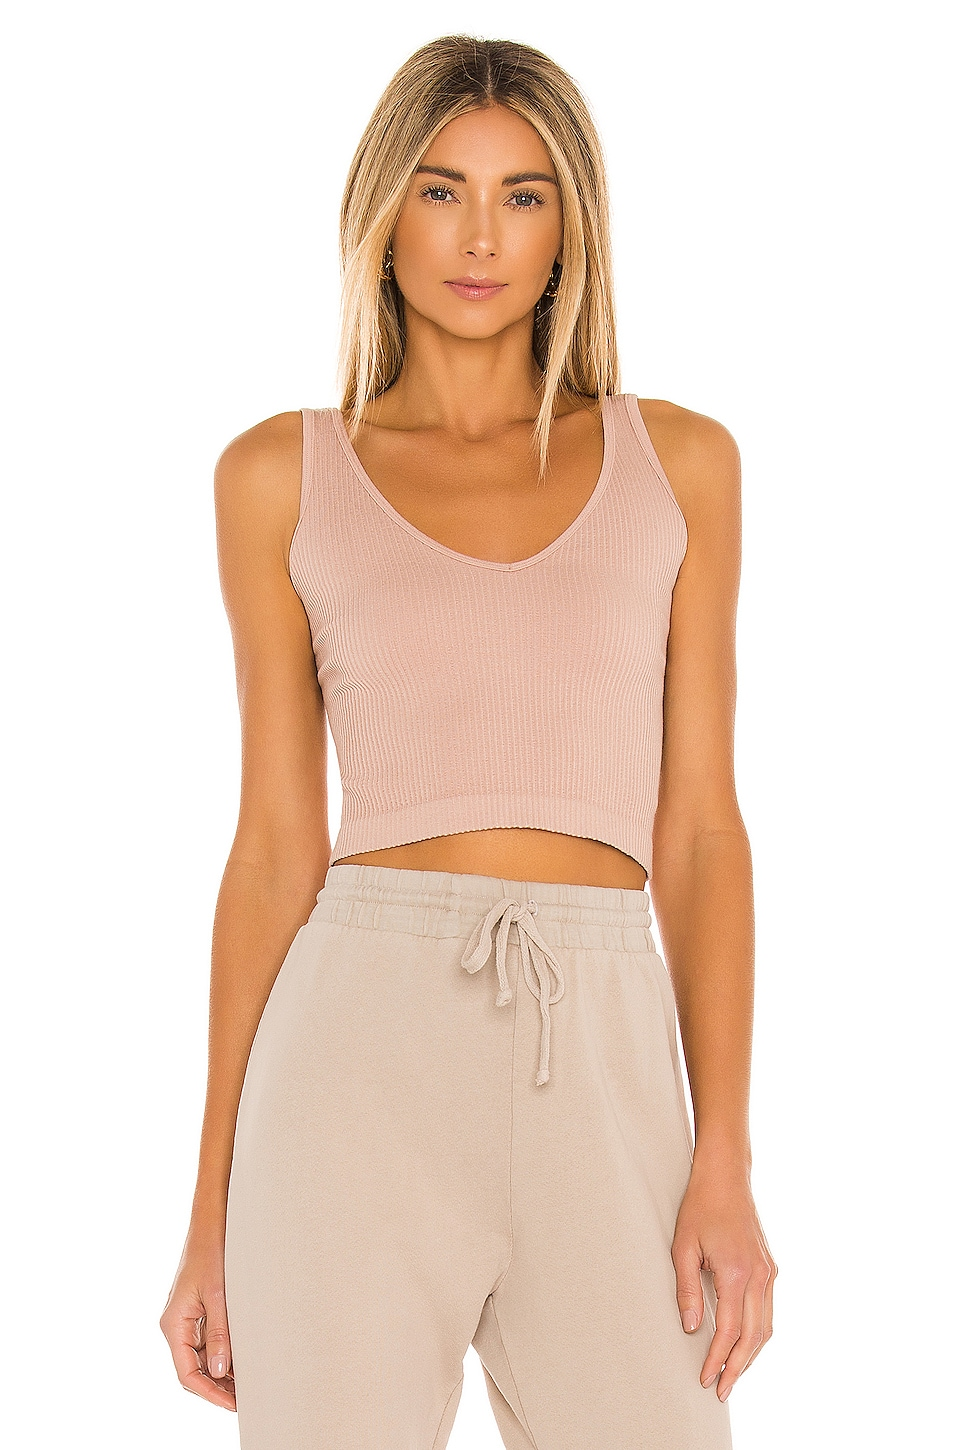 Free People Solid Rib Brami in Nude